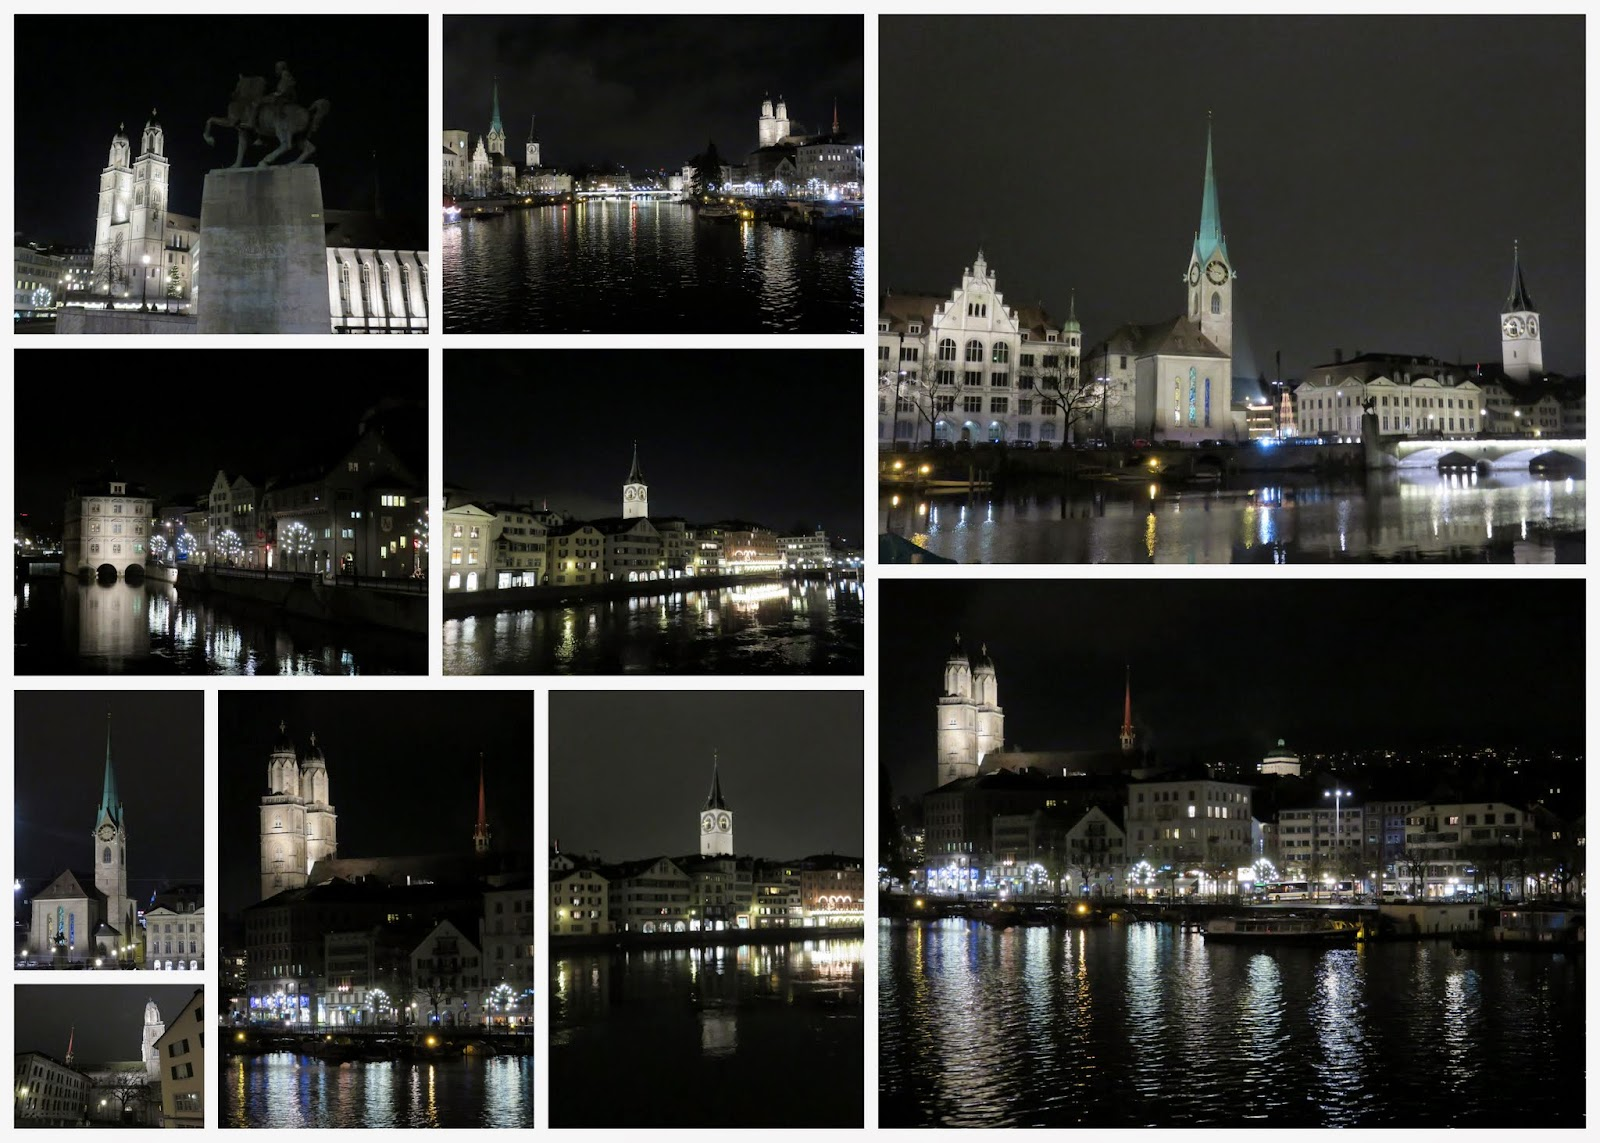 Things to do in Zurich in winter: check out city landmarks at night